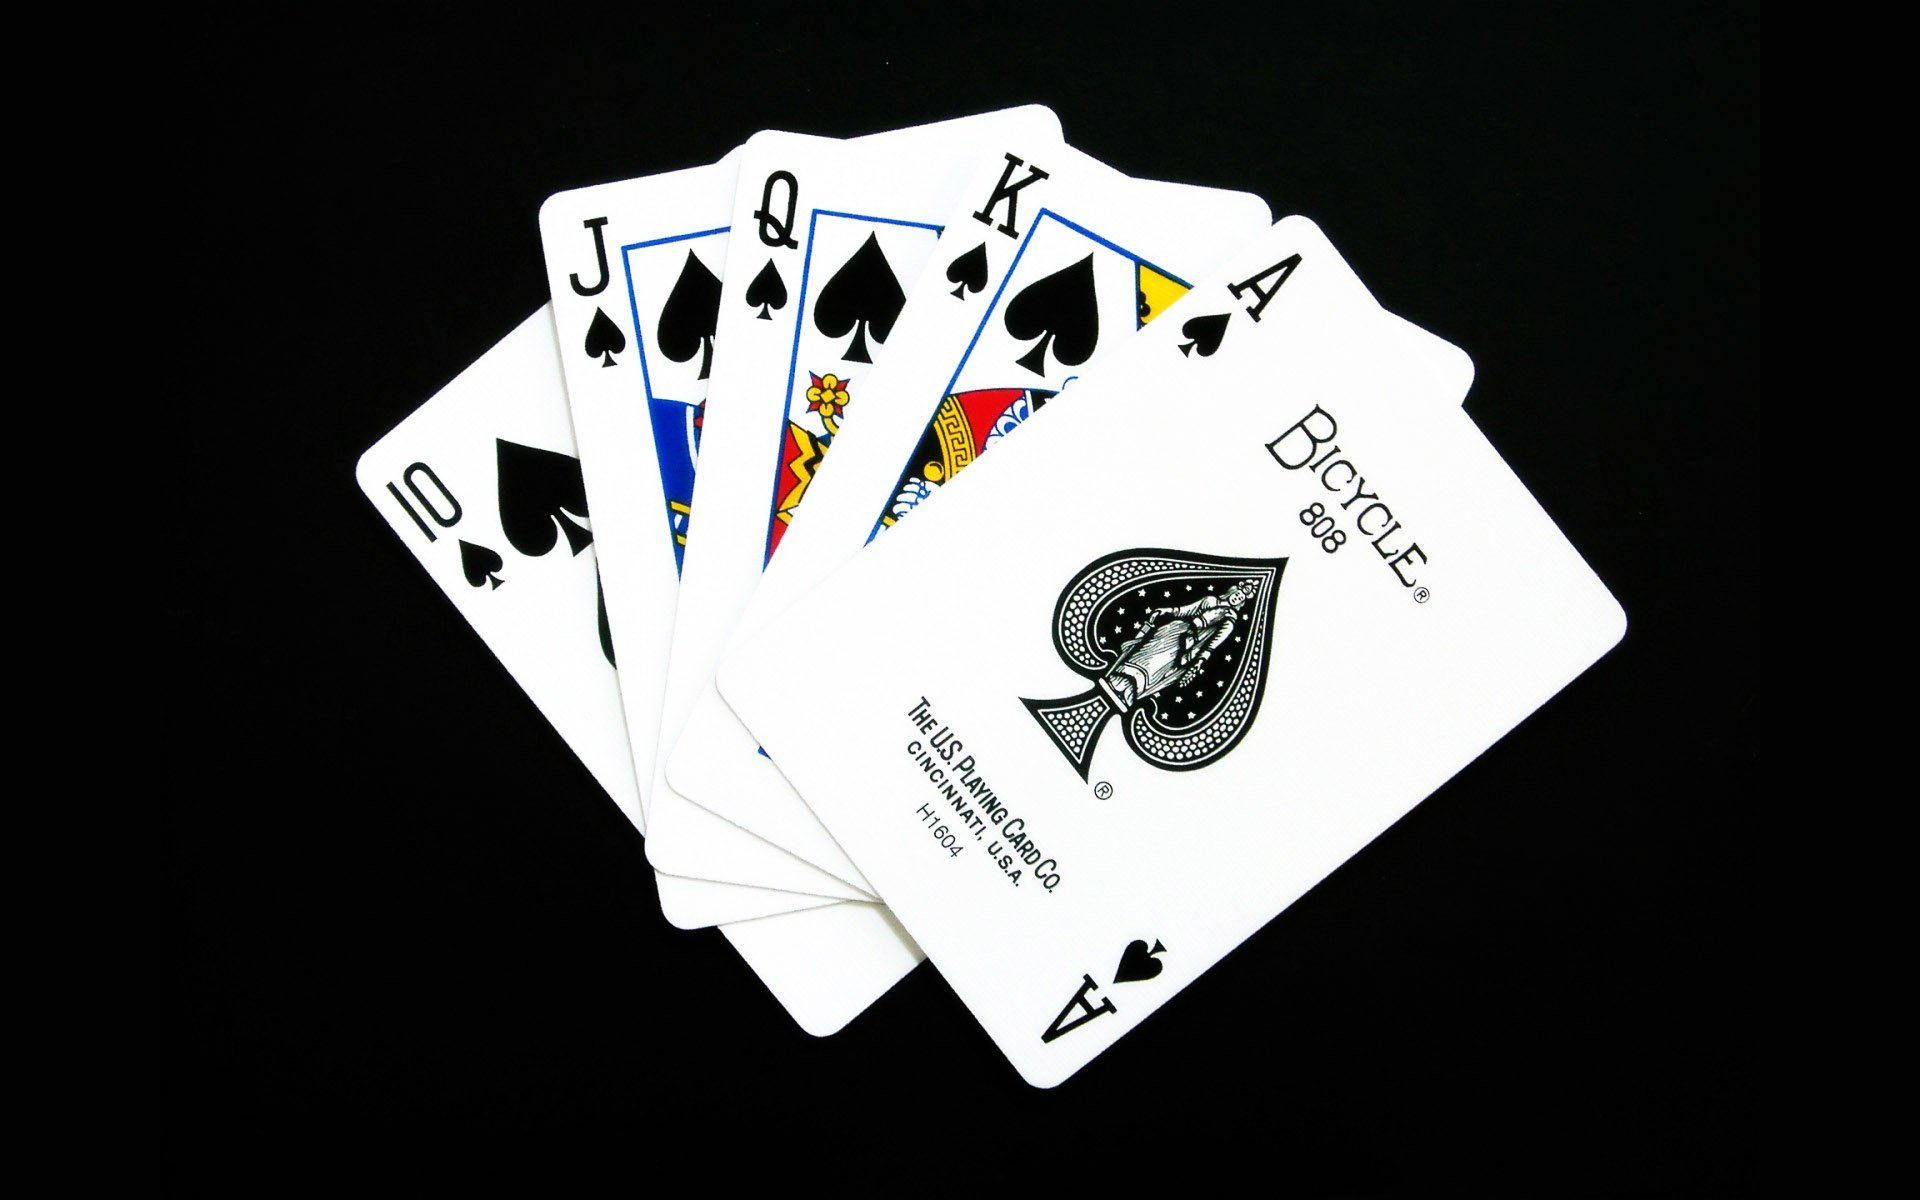 Four Secrets and techniques: How To make use of Online Gambling To Create A Successful Enterprise(Product)